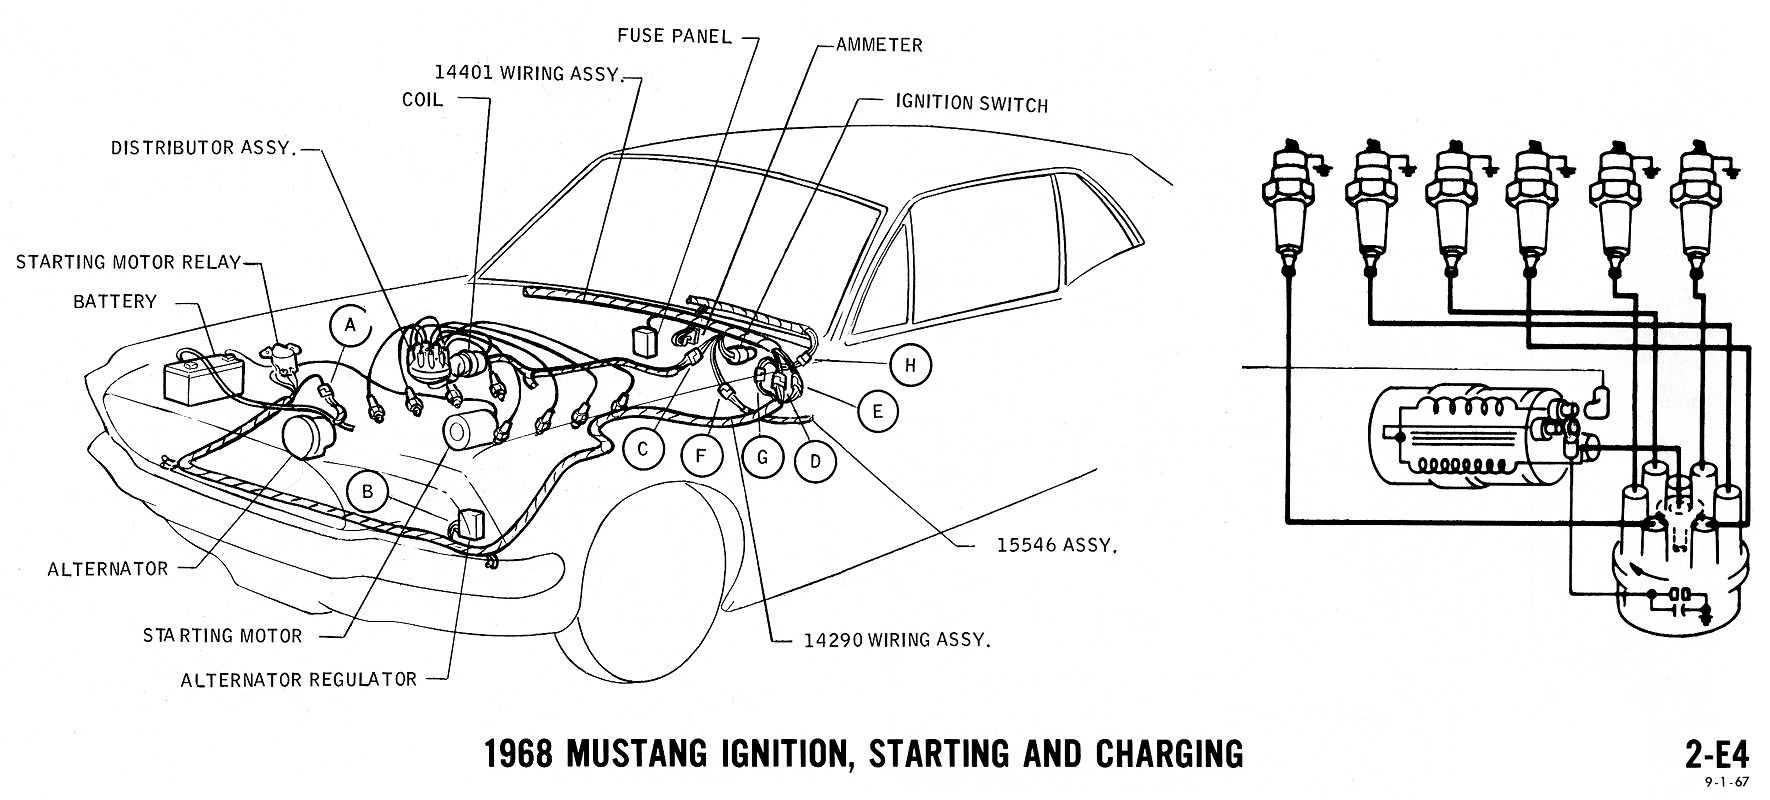 E4 1968 mustang wiring diagrams evolving software 1968 mustang alternator wiring diagram at webbmarketing.co